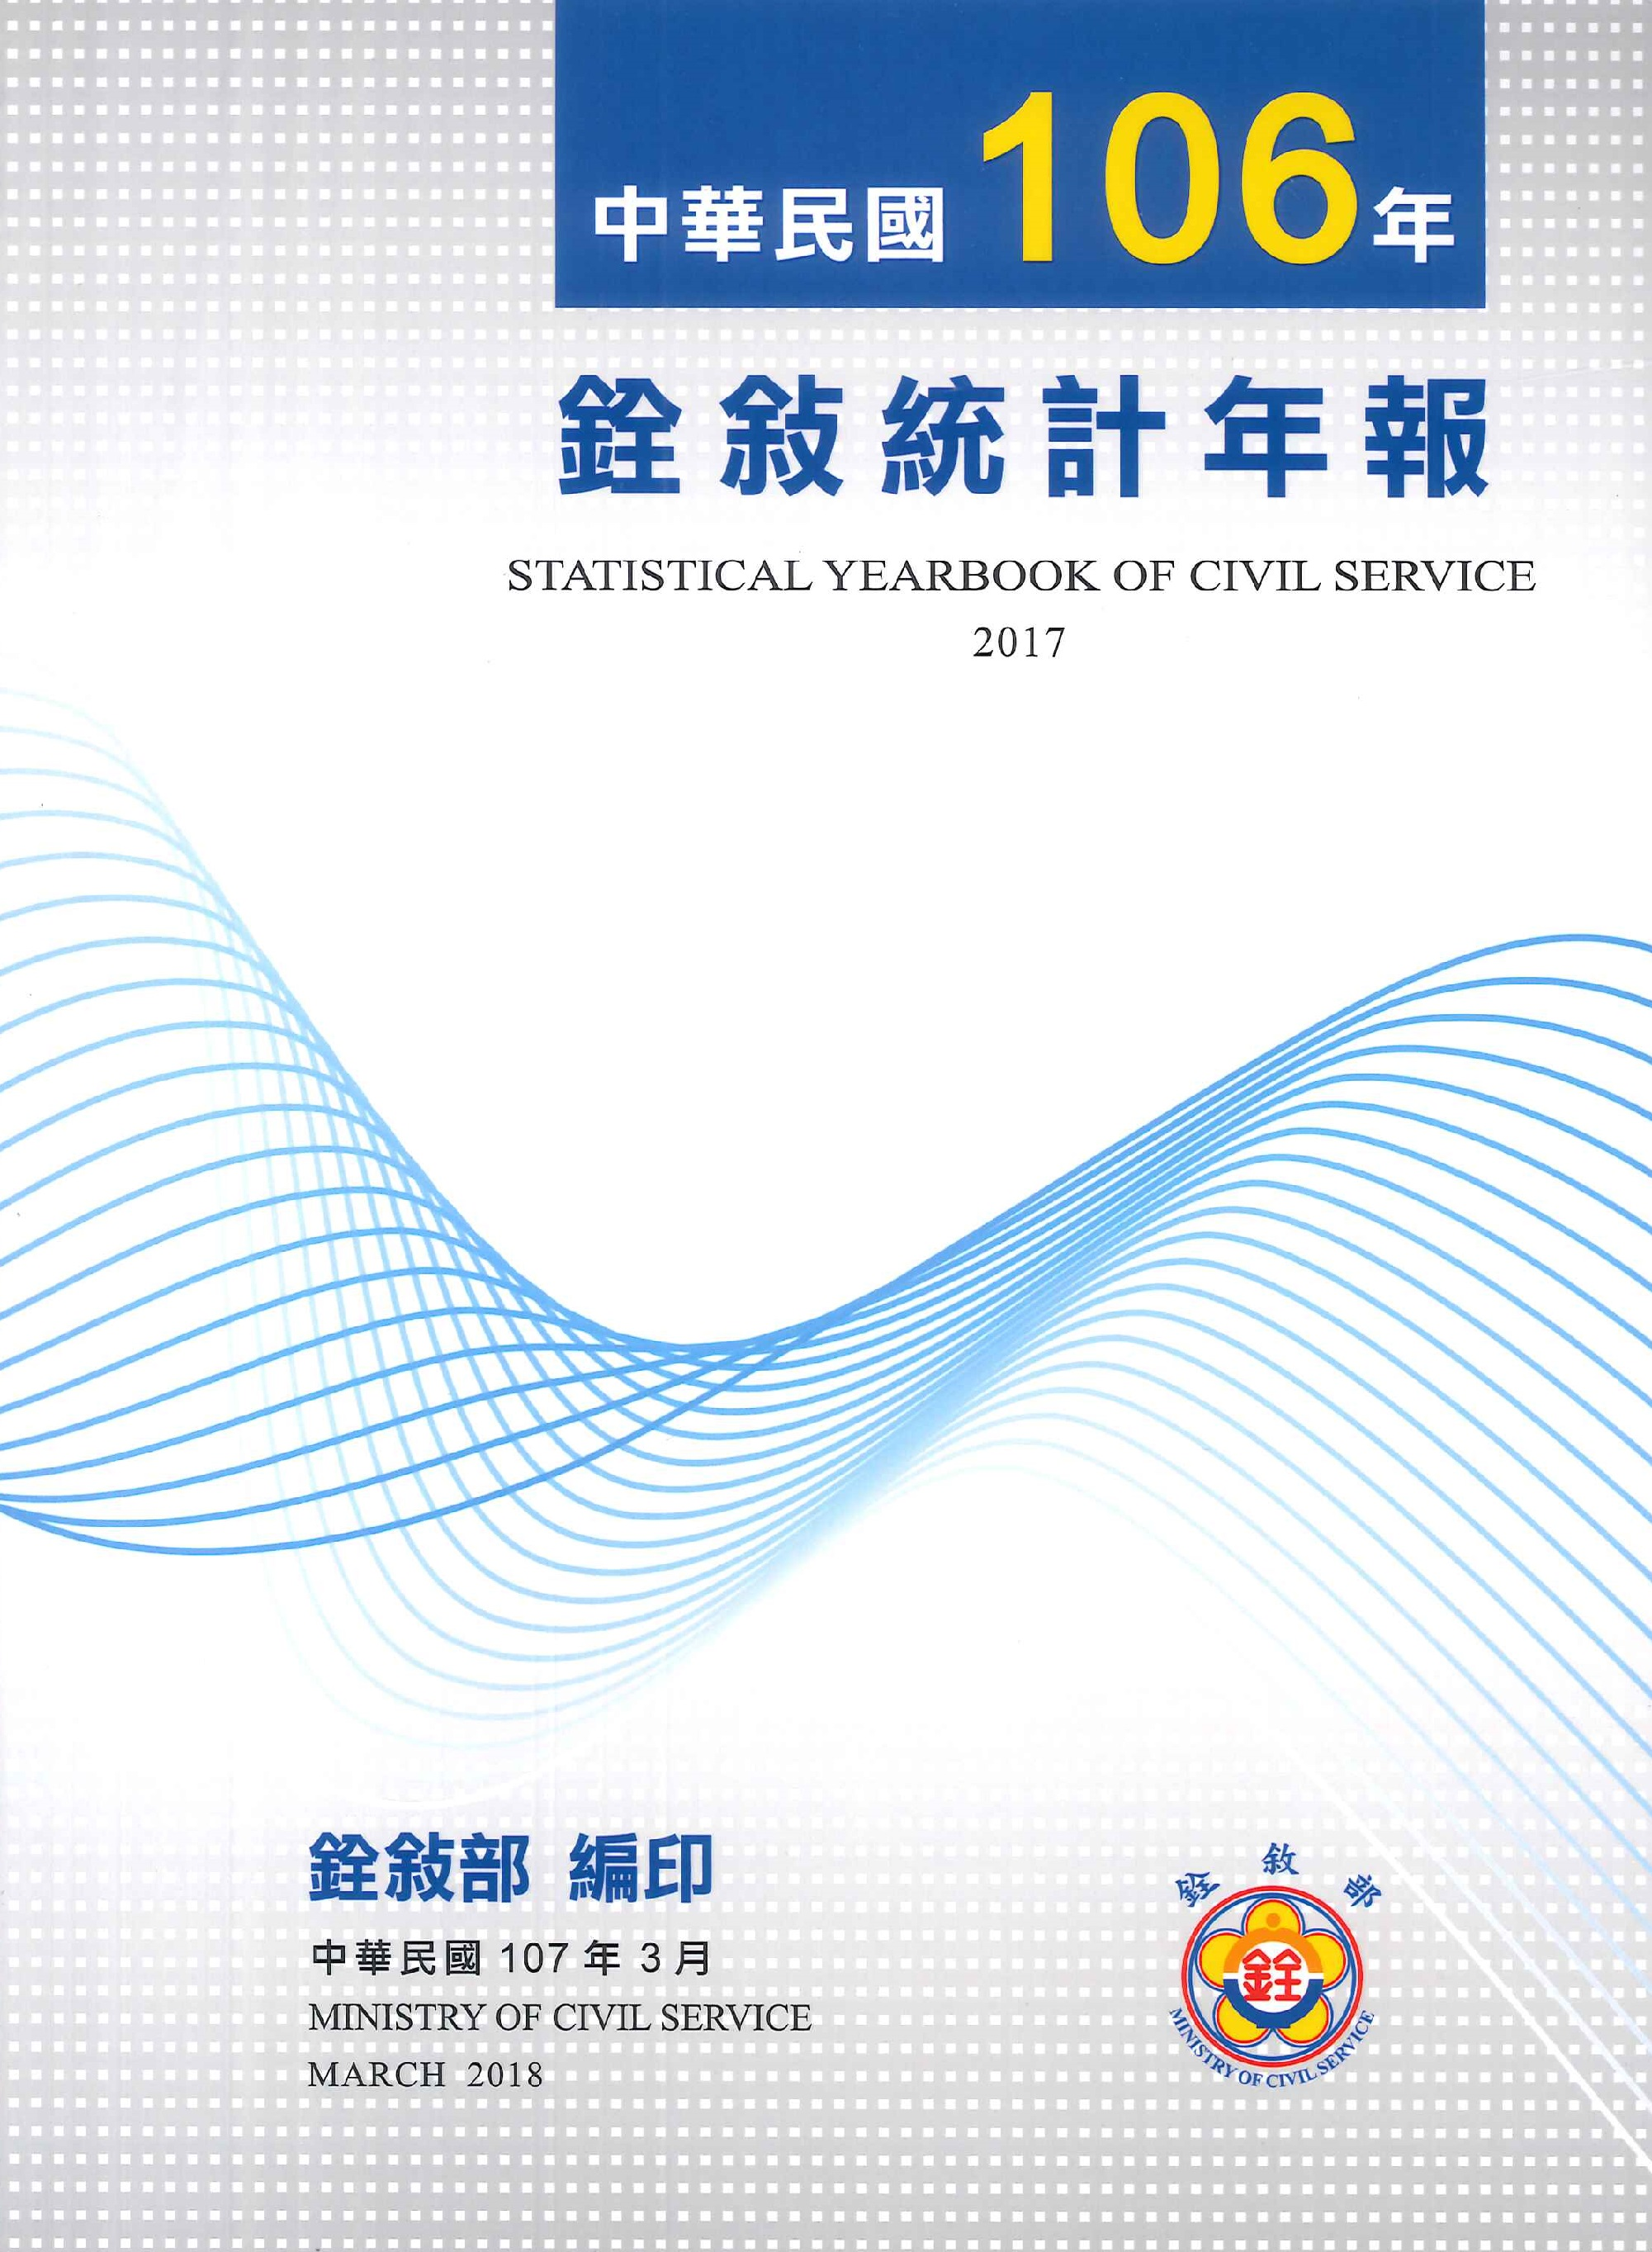 銓敍統計年報=Statistical yearbook of civil service